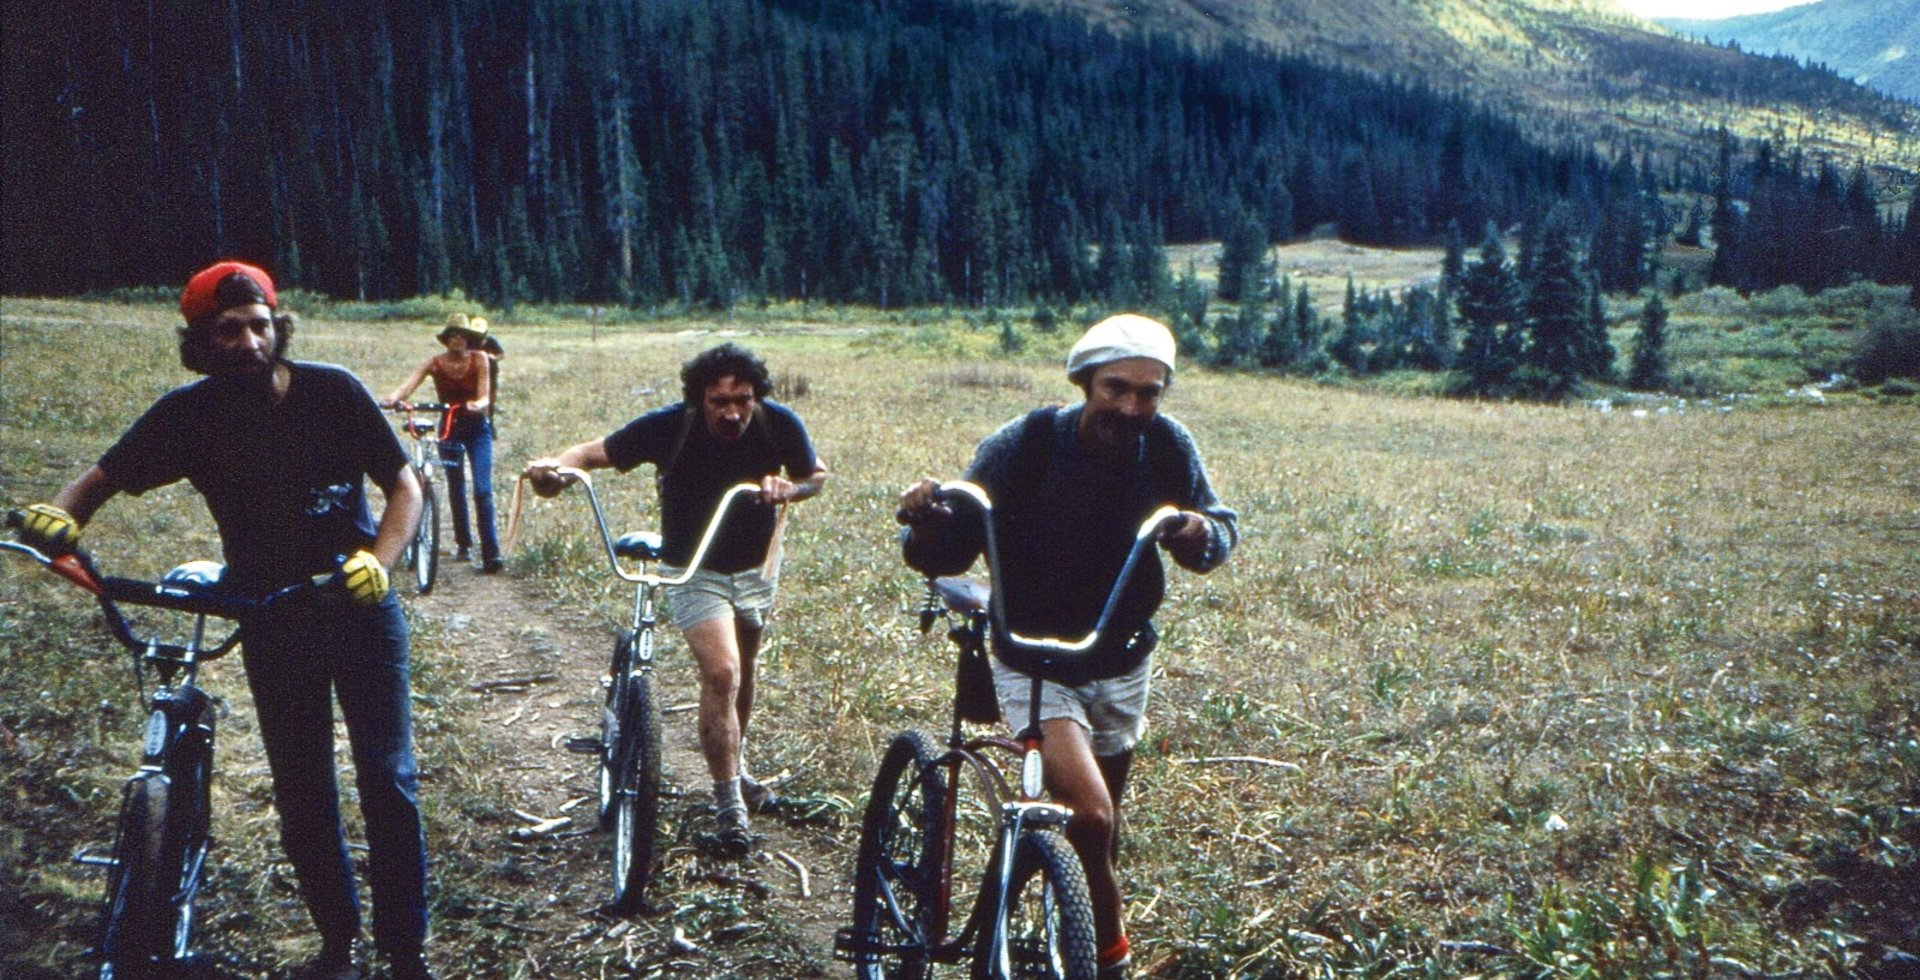 Albert Maunz, Bob Starr, Jim Cloud and a local Crested Butte woman arriving at Cumberland Basin Camp, in September of 1978.